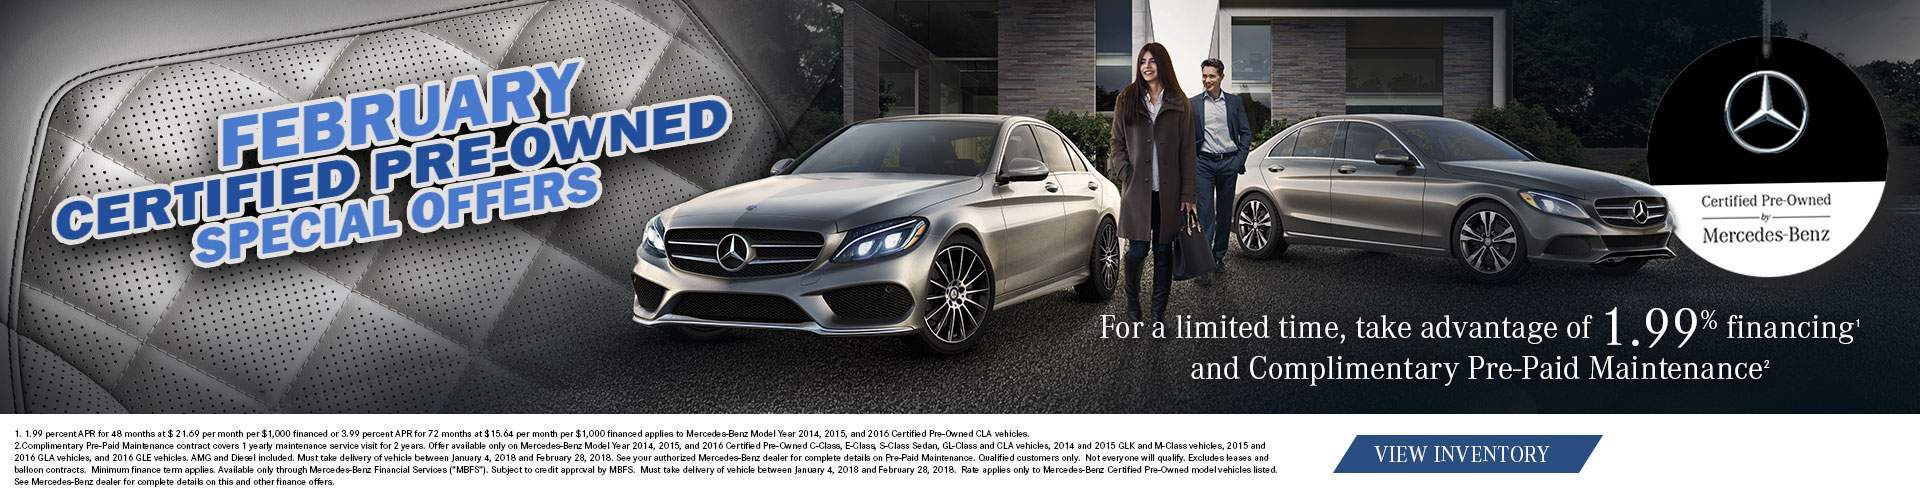 Mercedes-Benz January Certified Pre-Owned Special Offers